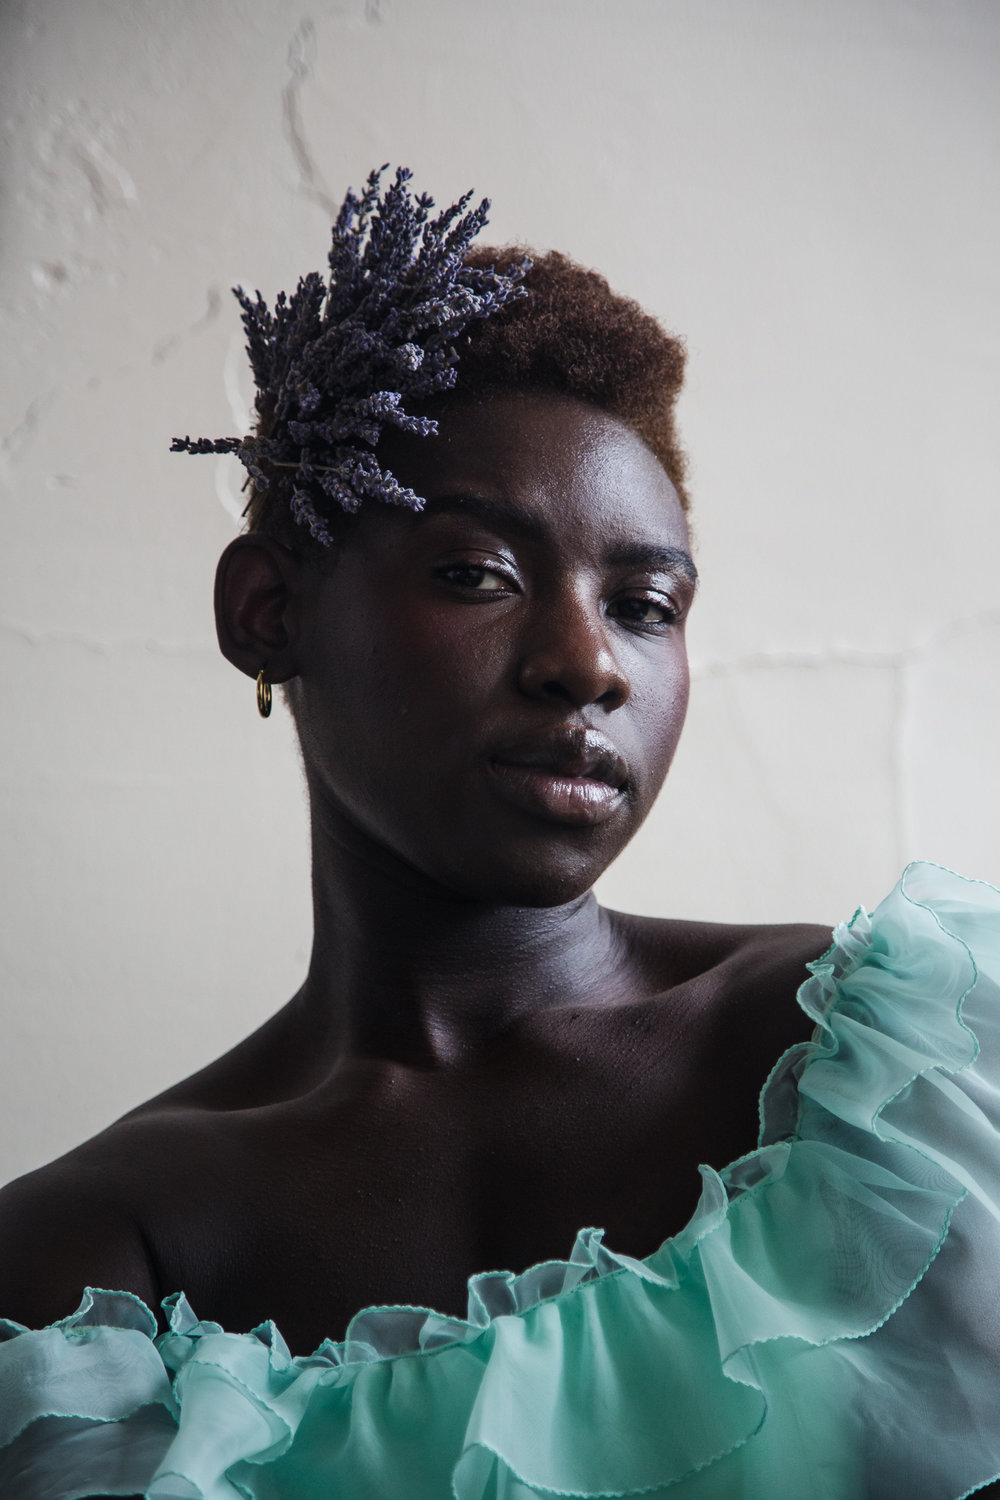 ayomide adeoti - captured by reece williams, styled by oré zaccheus